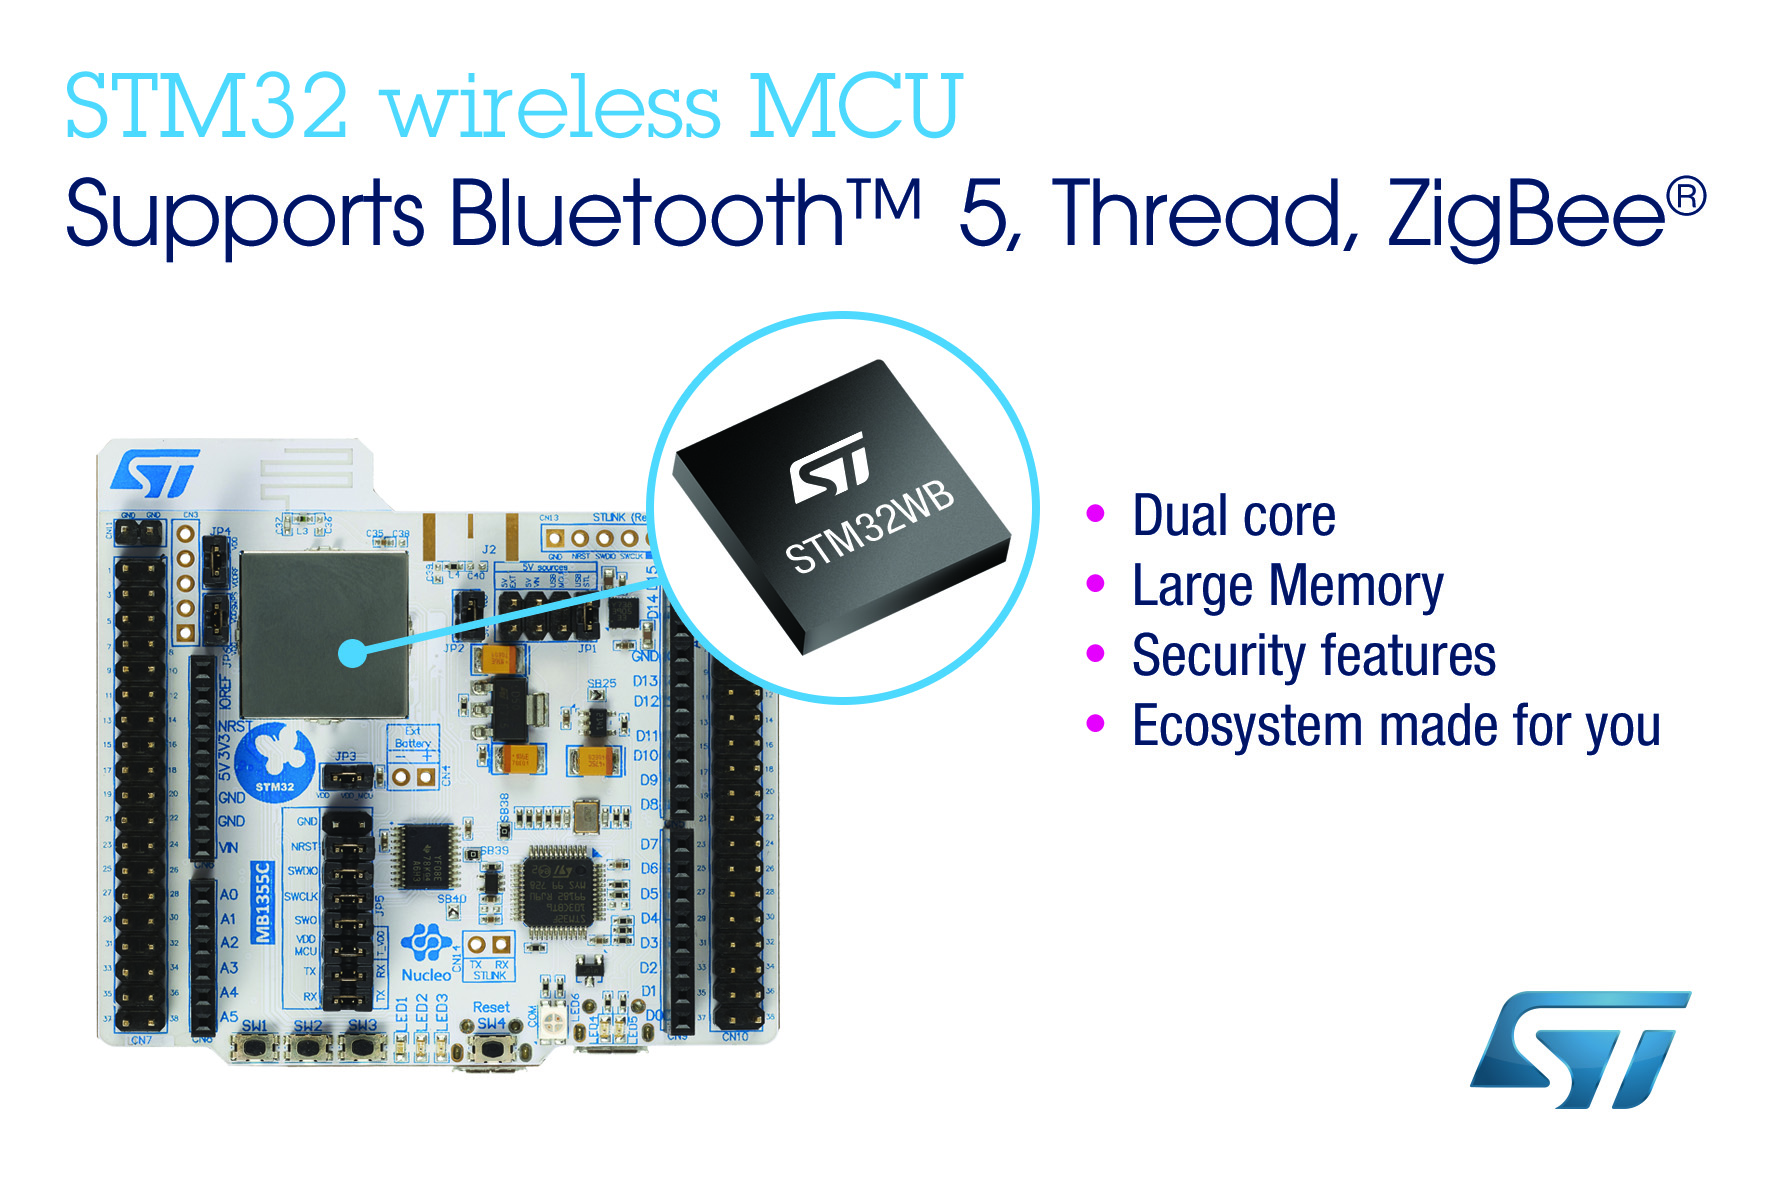 STM32WBx5 dual-core wireless MCUs deliver ultra-low-power